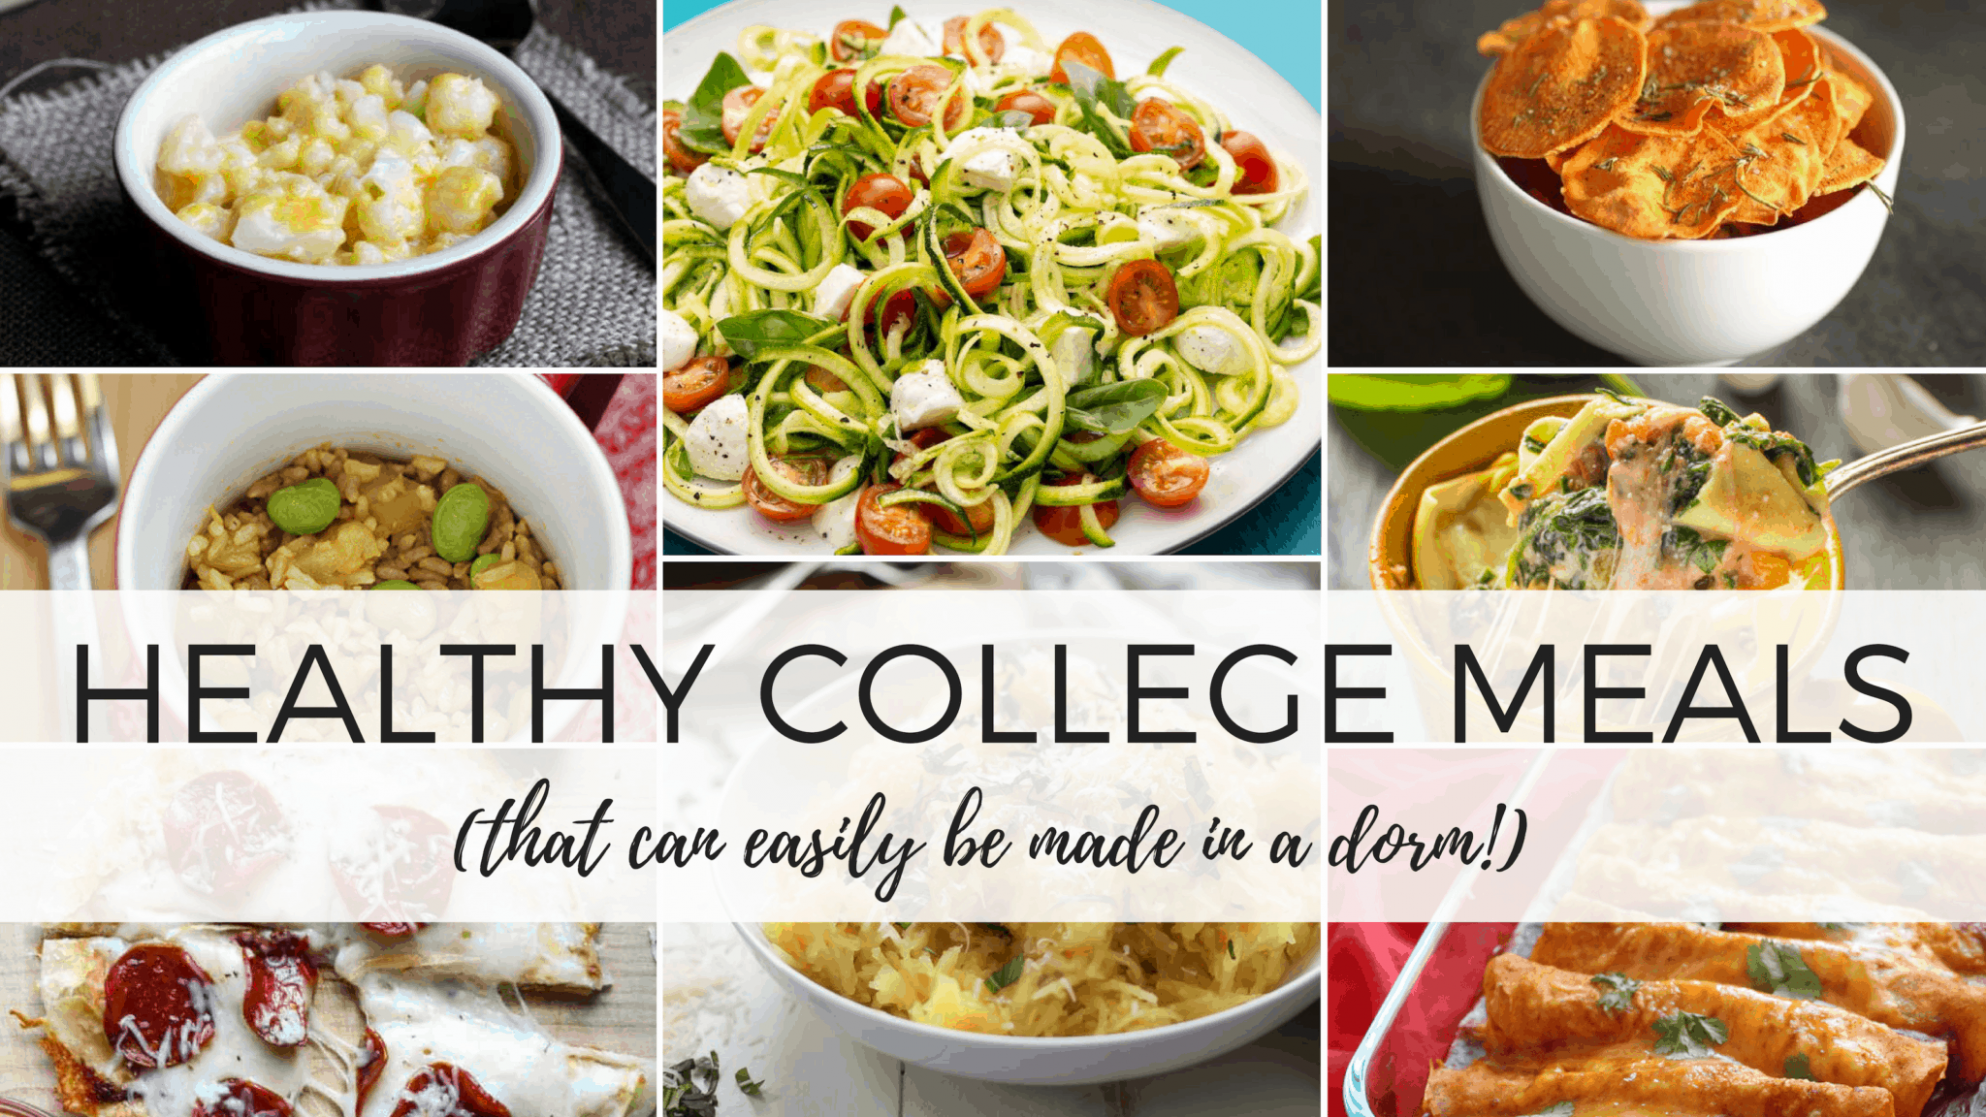 9 Insanely Healthy College Meals You Can Make In A Dorm - By ..